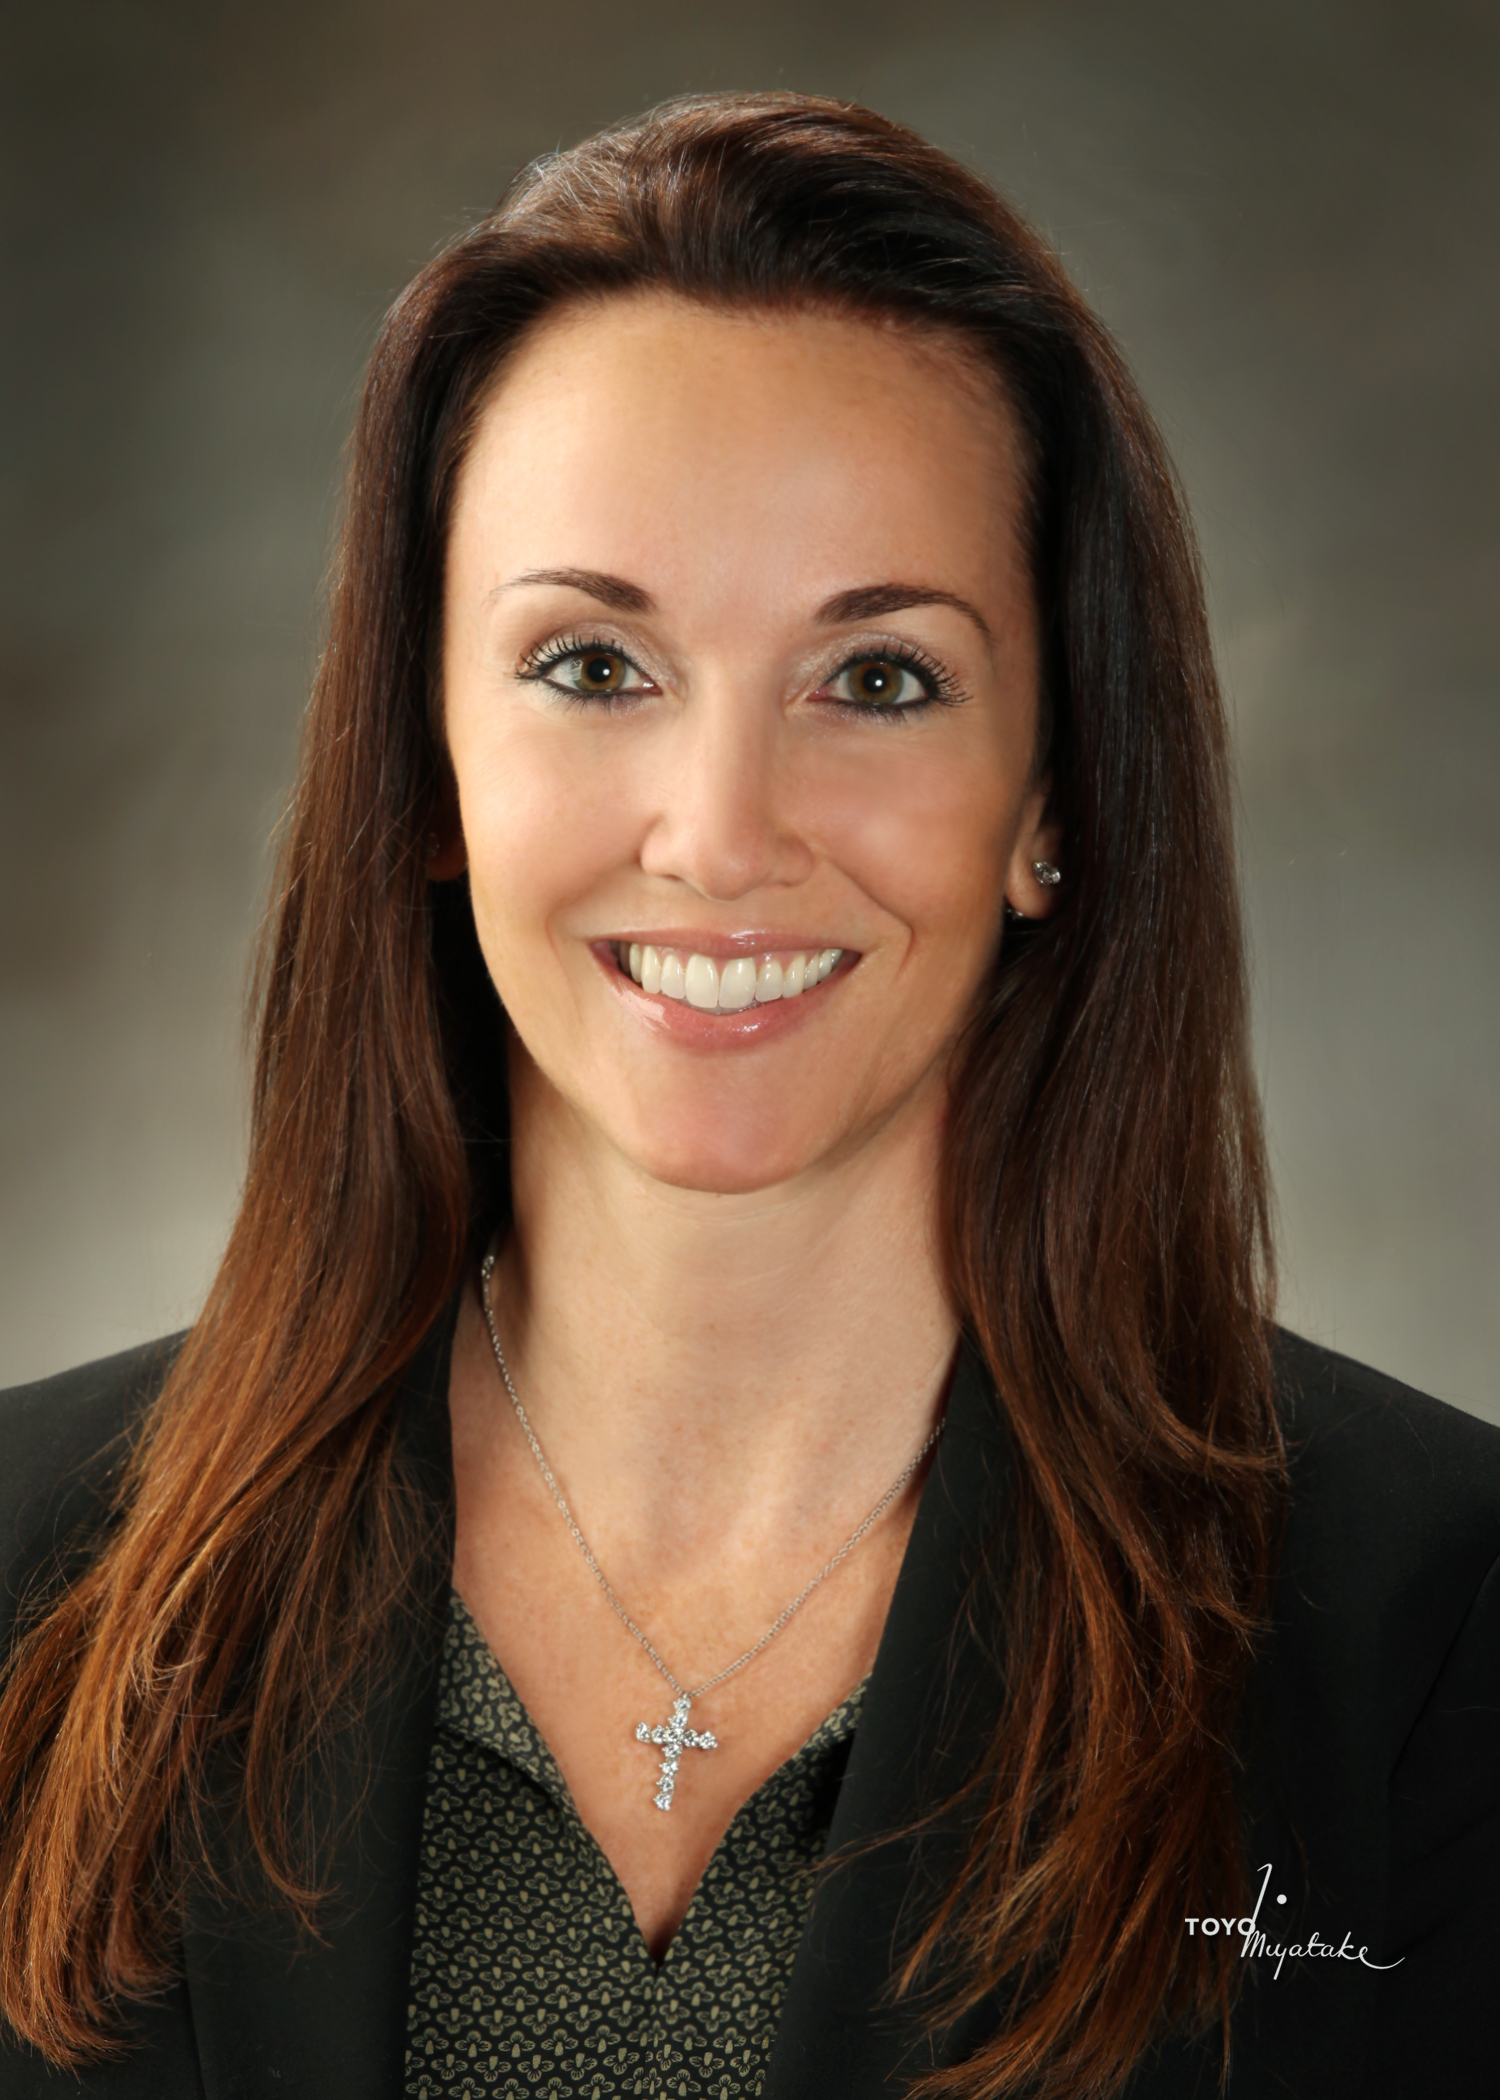 Headshot of City Manager Jessica Binnquist